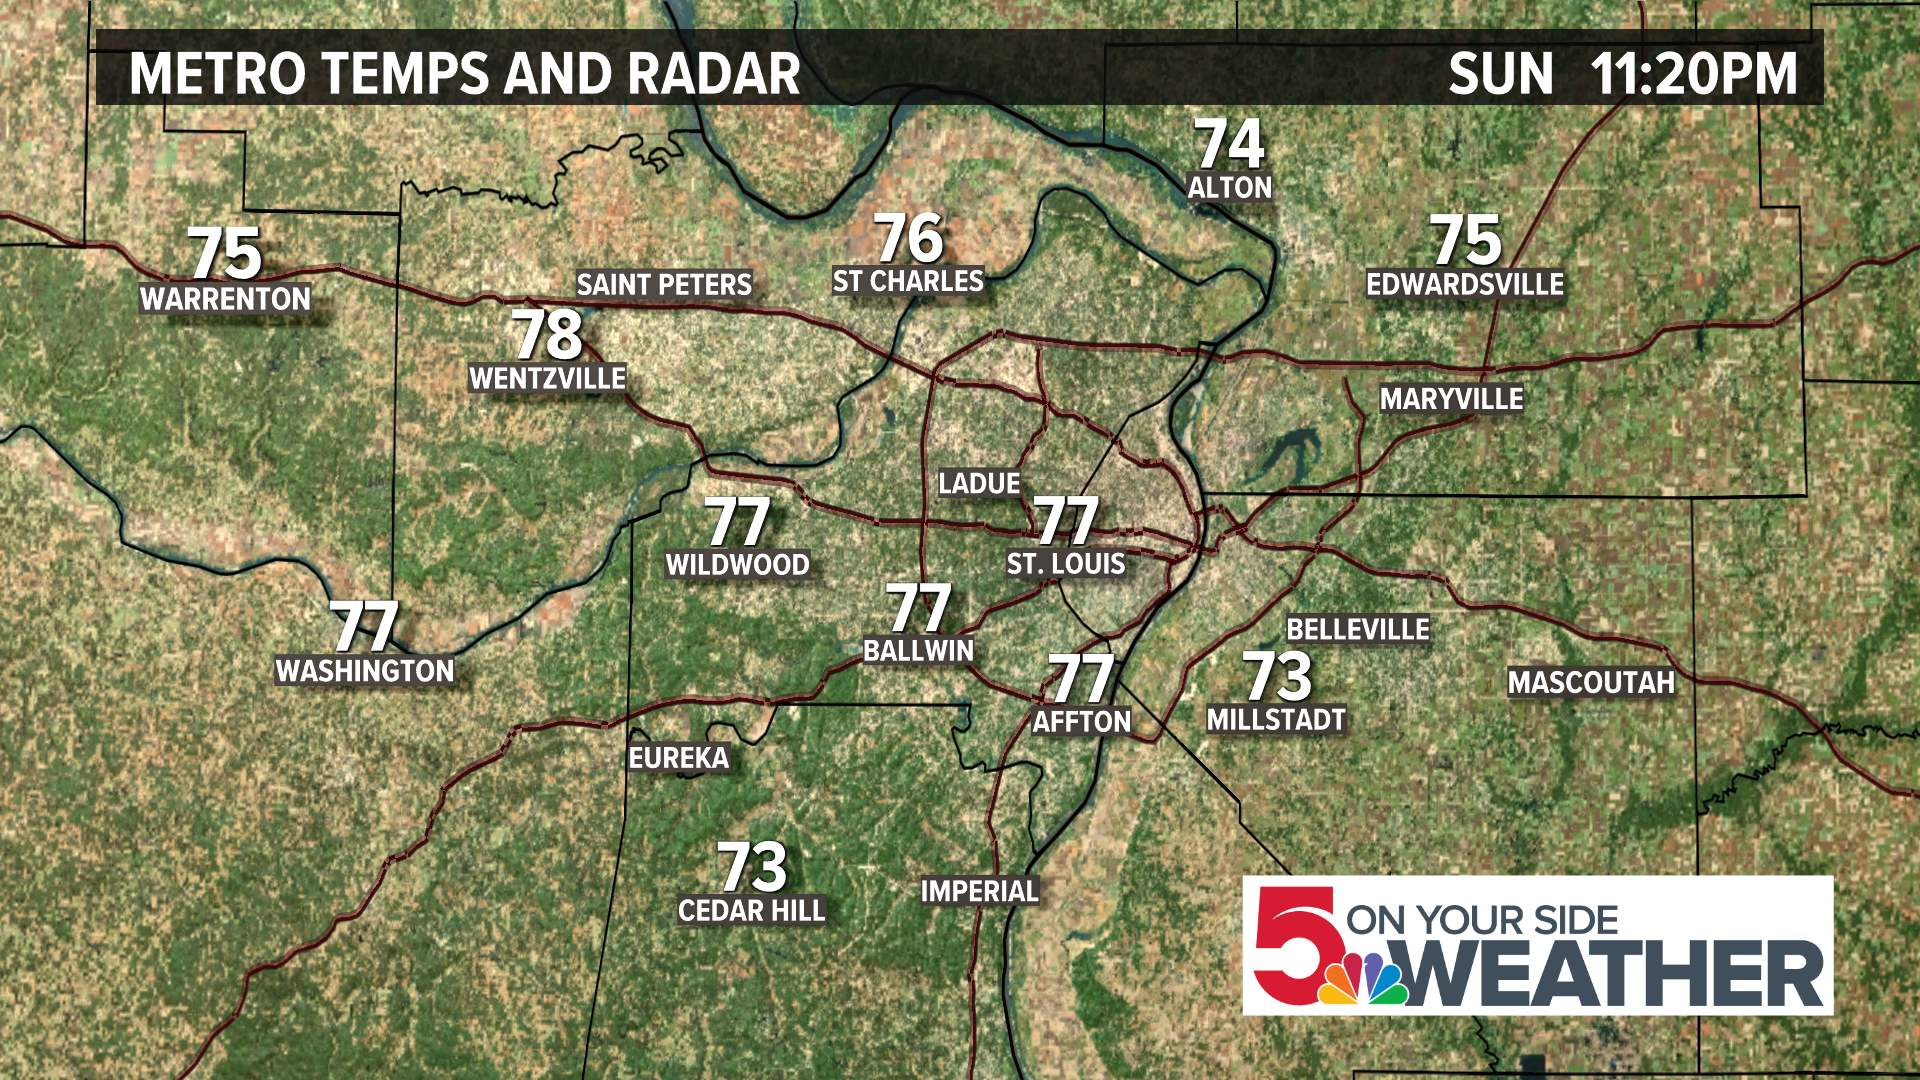 Metro Radar and Temperatures